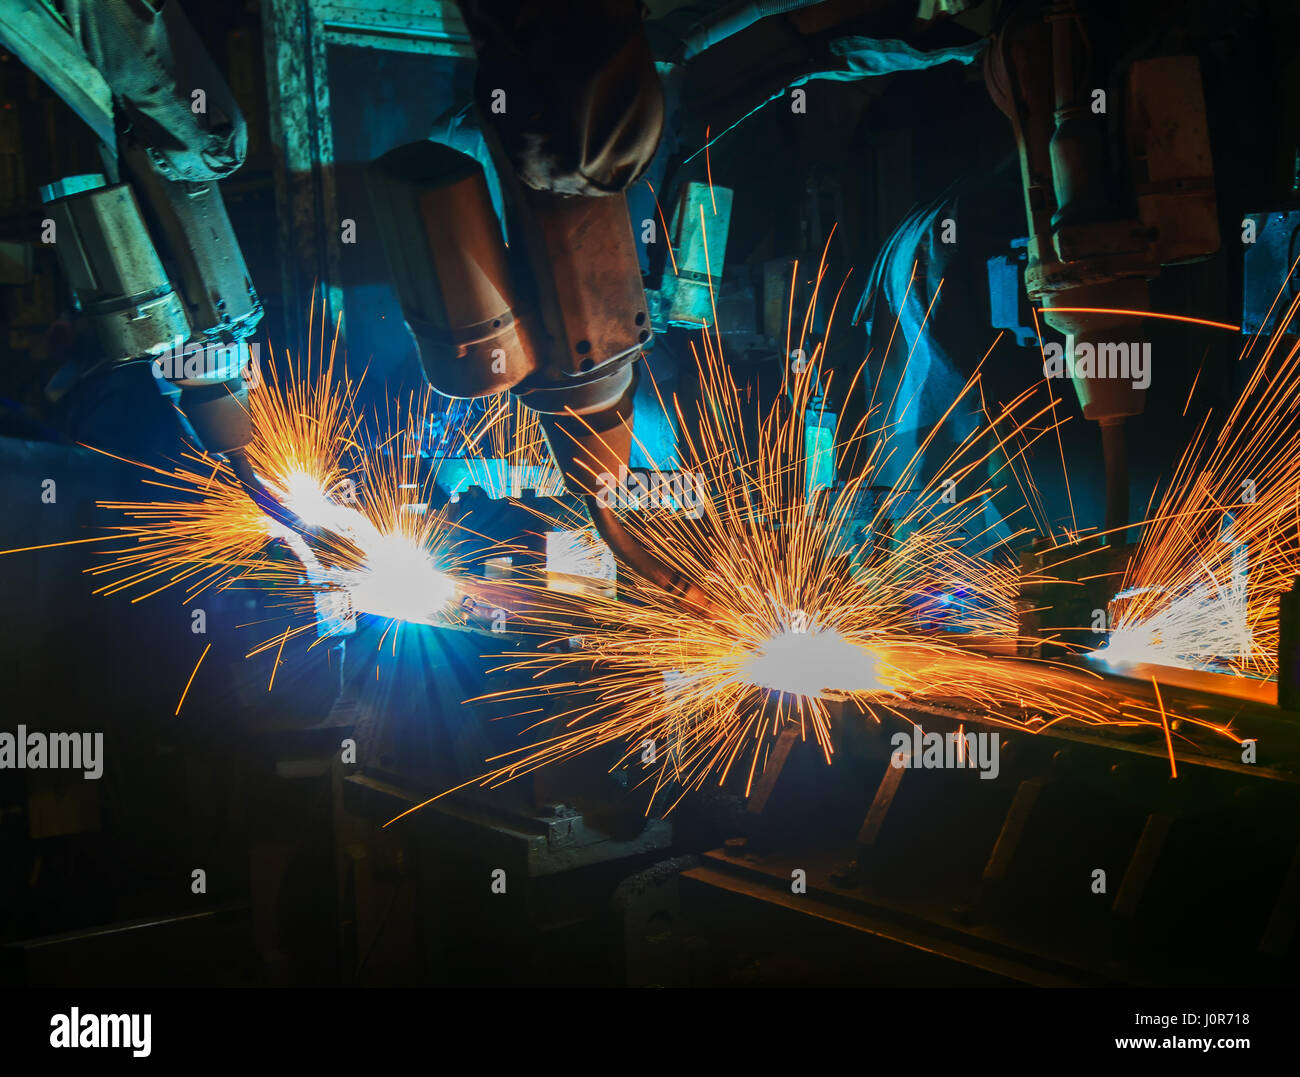 Industrial welding robots in production line manufacturer factory - Stock Image